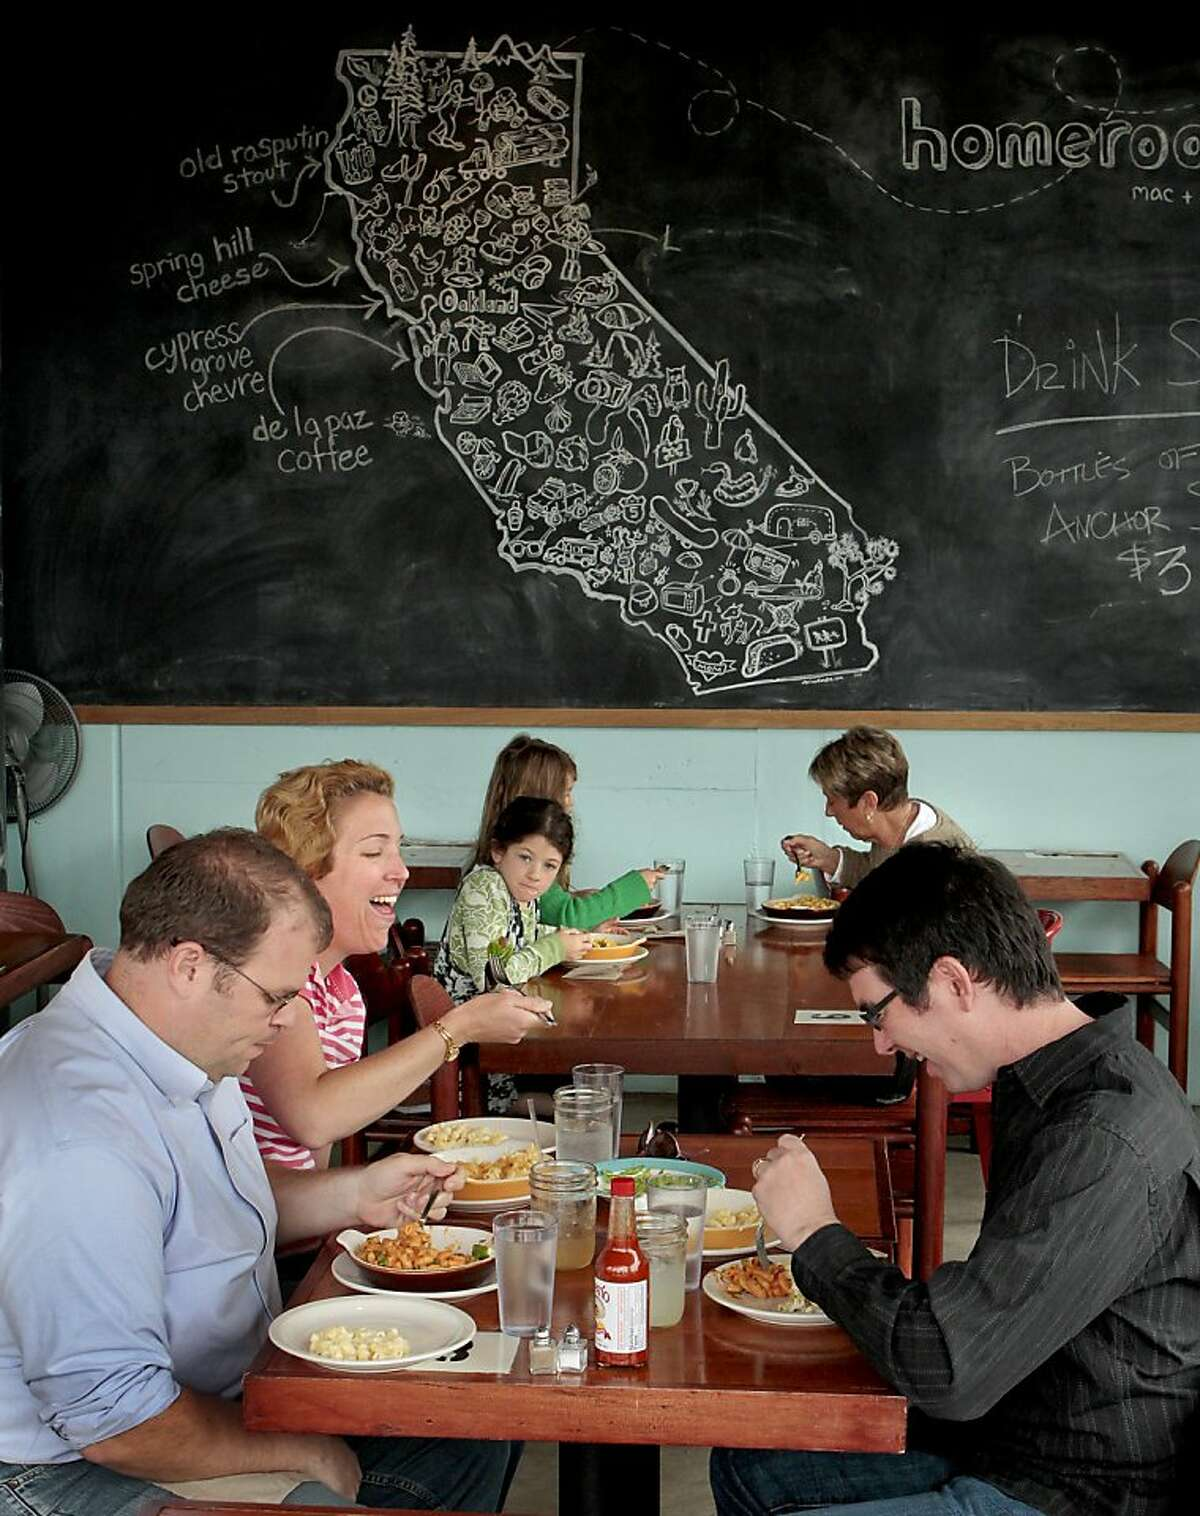 Diners enjoy lunch at Homeroom Mac + Cheese Restaurant in Oakland, Calif. on Wednesday, April 20th, 2011. Ran on: 04-28-2011 Diners at Homeroom get some form or another of macaroni and cheese, served in a casual place with blackboard walls.